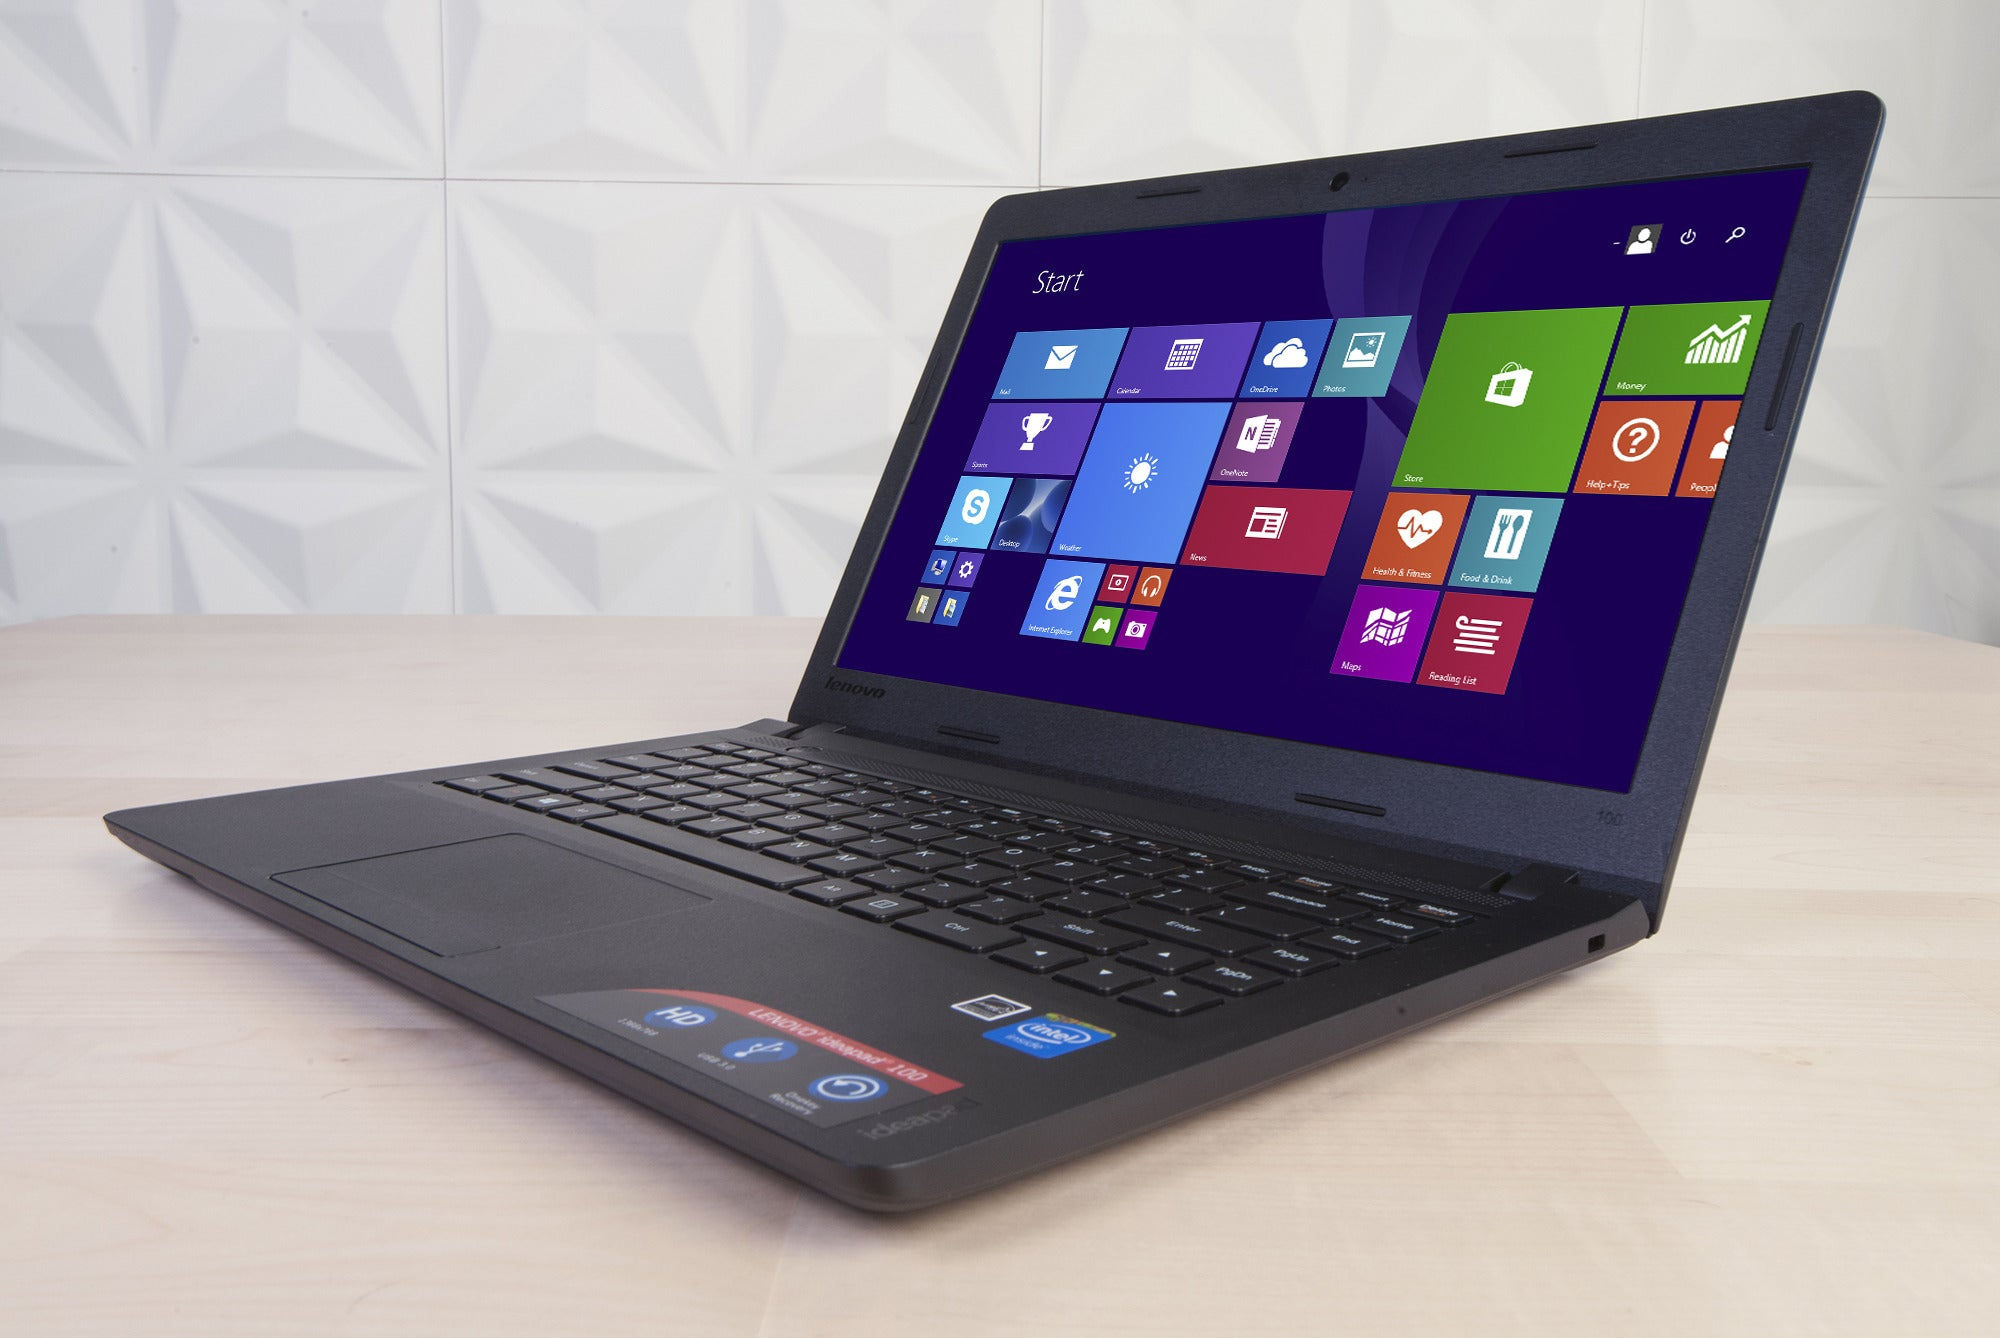 Lenovo Laptop Lenovo Ideapad 100 Review This Big Laptop S Got A Tiny Little